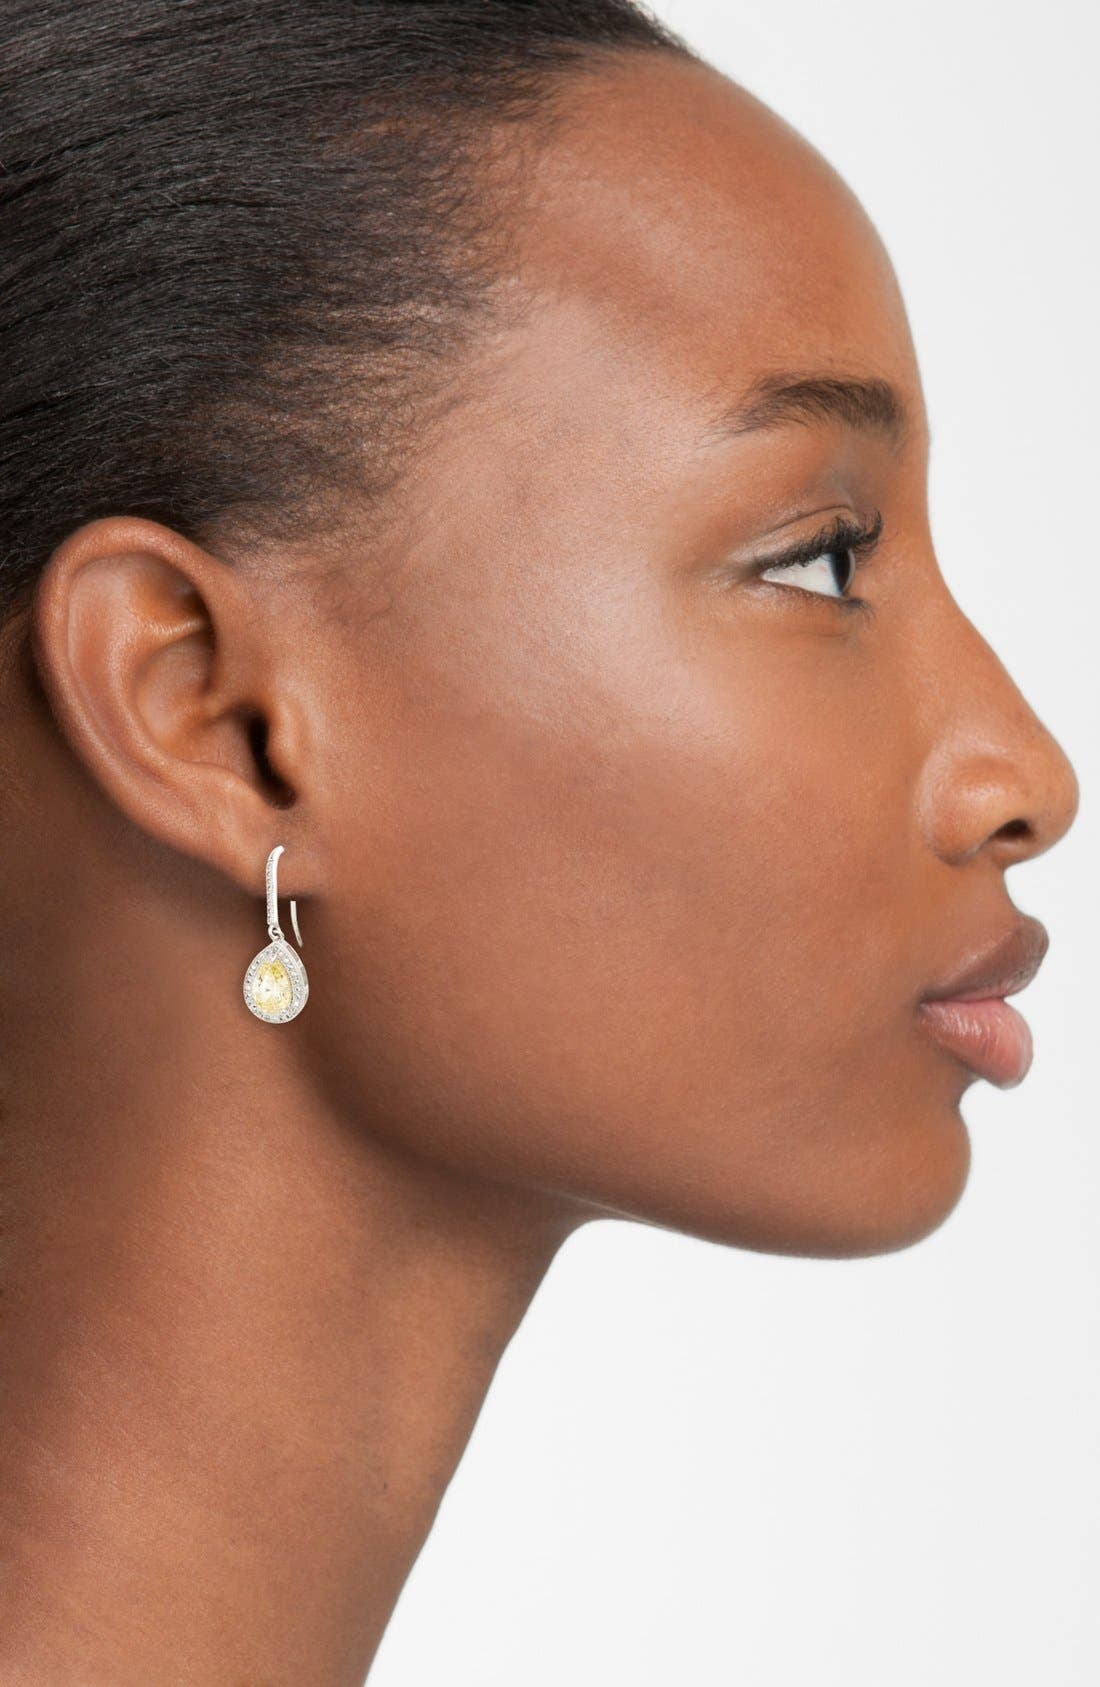 'Lassaire' Canary Drop Earrings,                             Alternate thumbnail 2, color,                             SILVER/ CANARY YELLOW